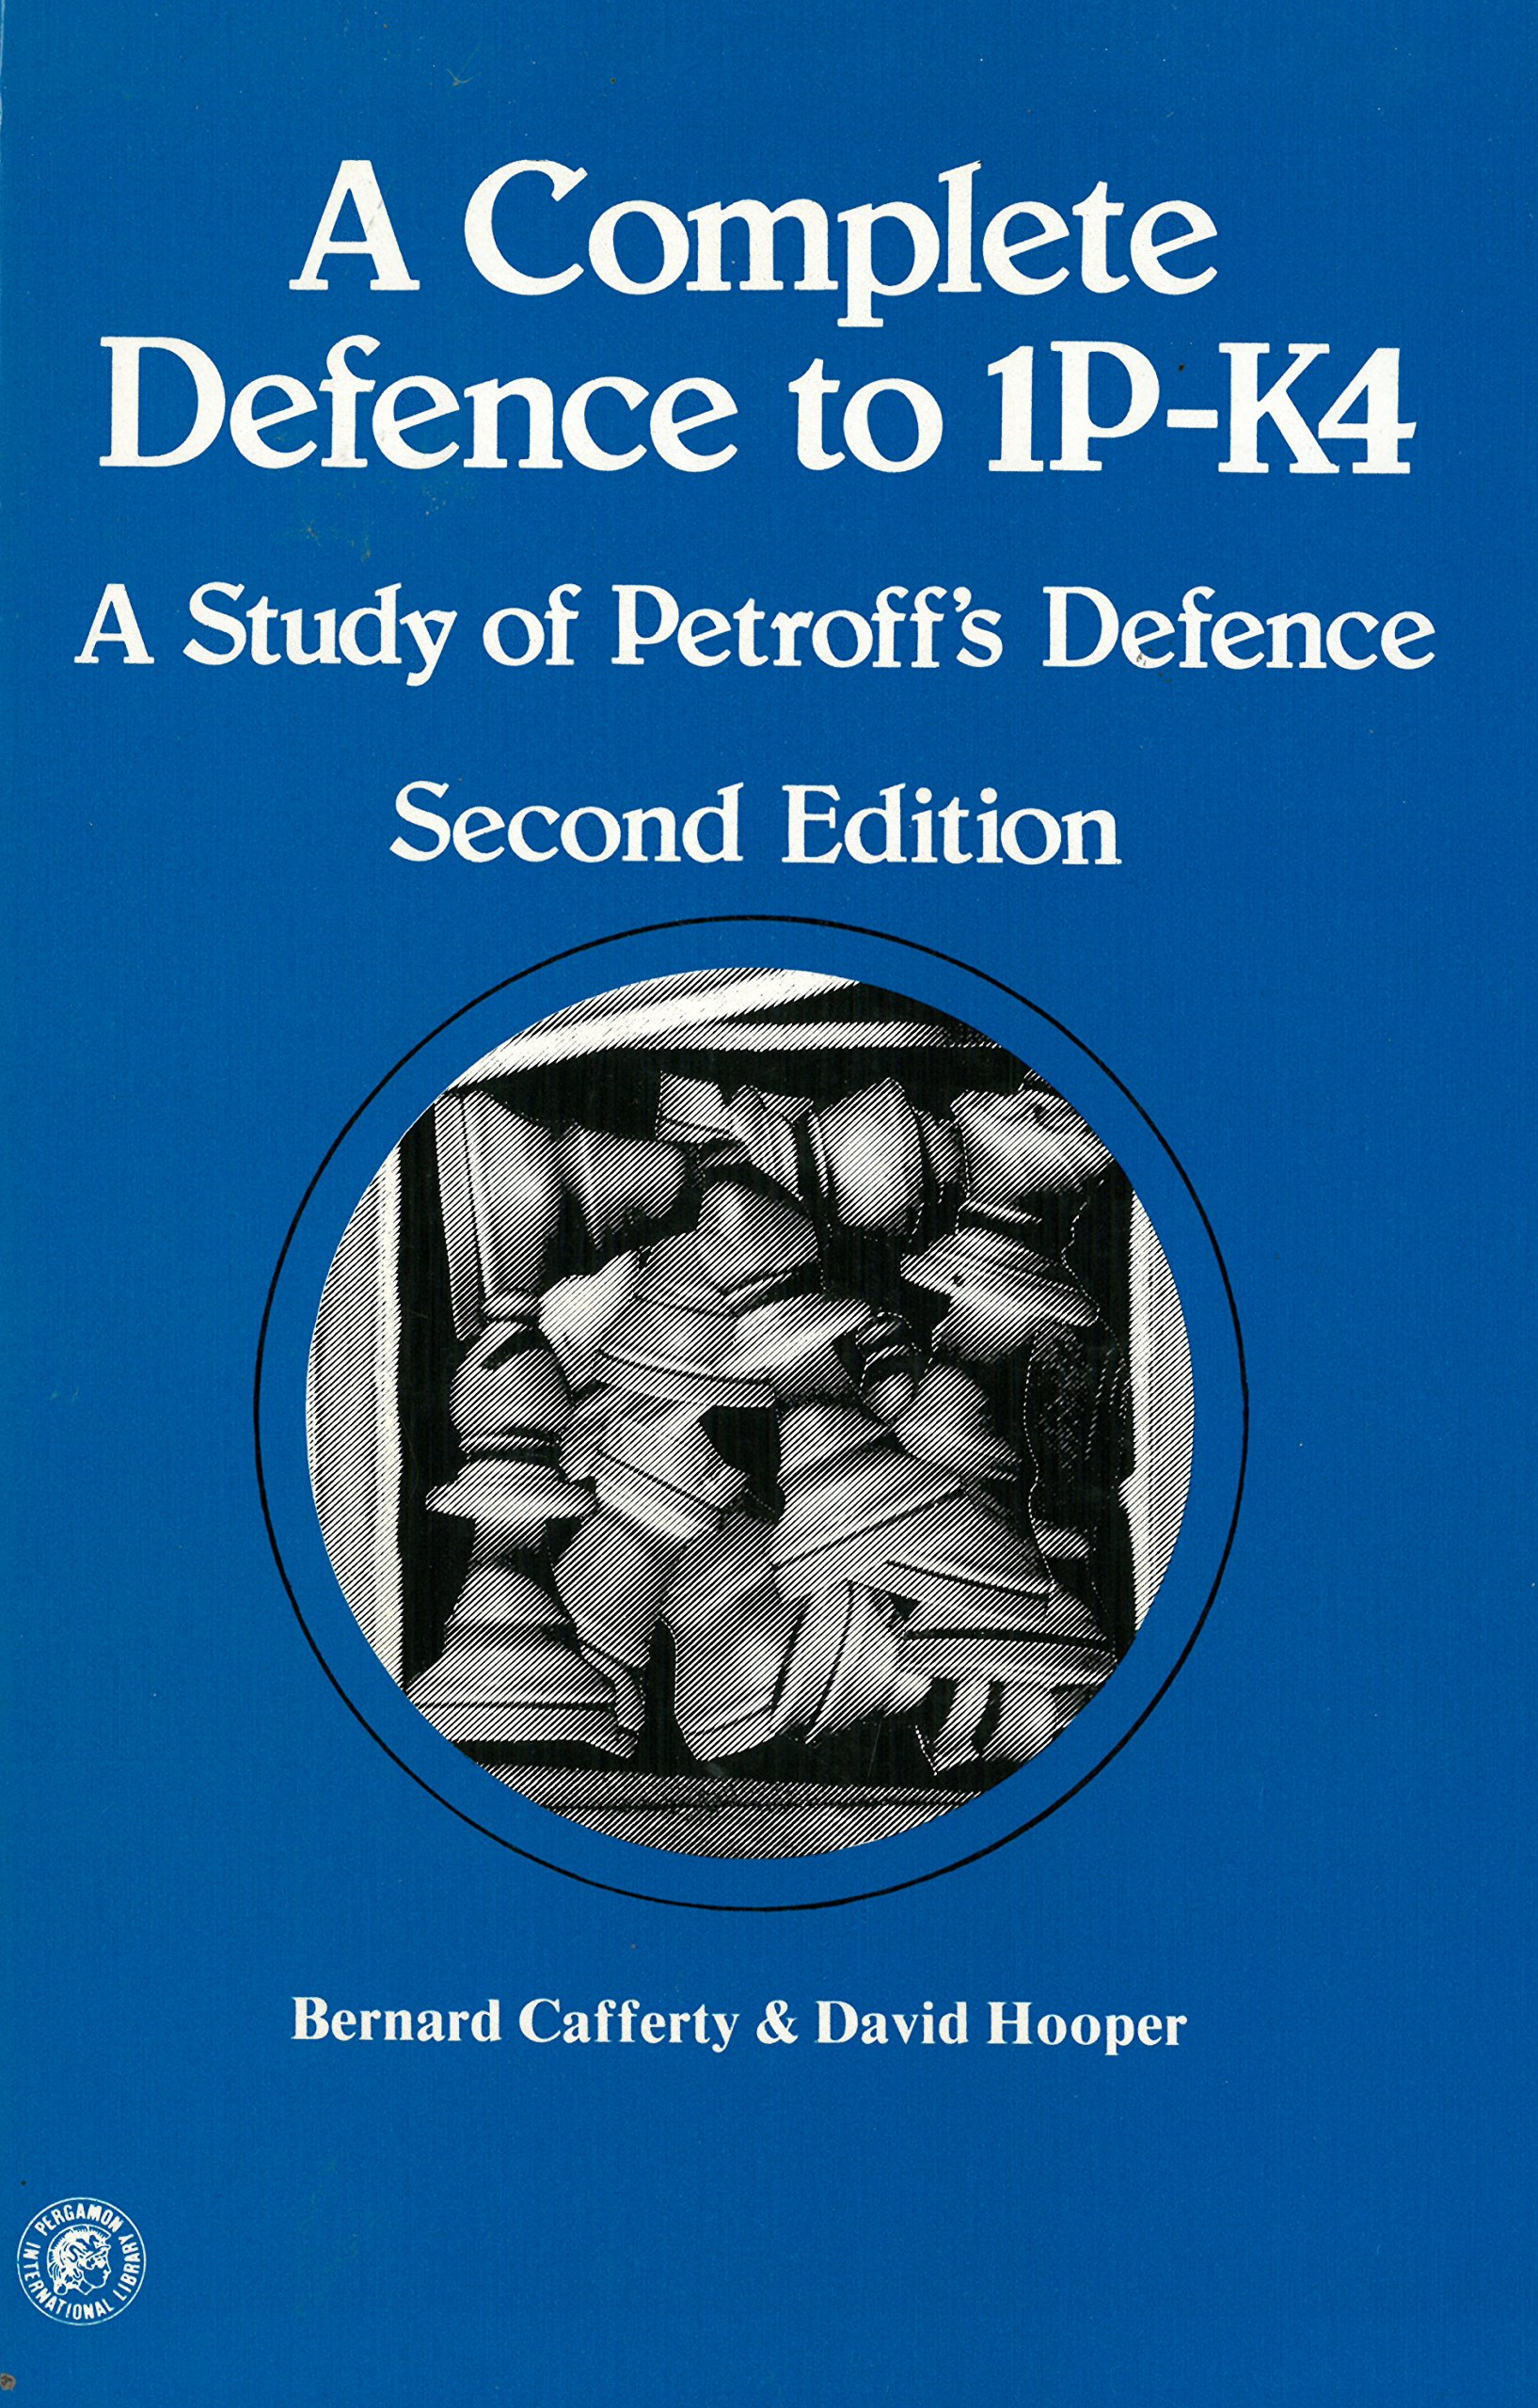 A Complete Defence to 1P-K4: A Study of Petroff's Defence (2nd ed.), Pergammon Press, ISBN 0-08-024088-7